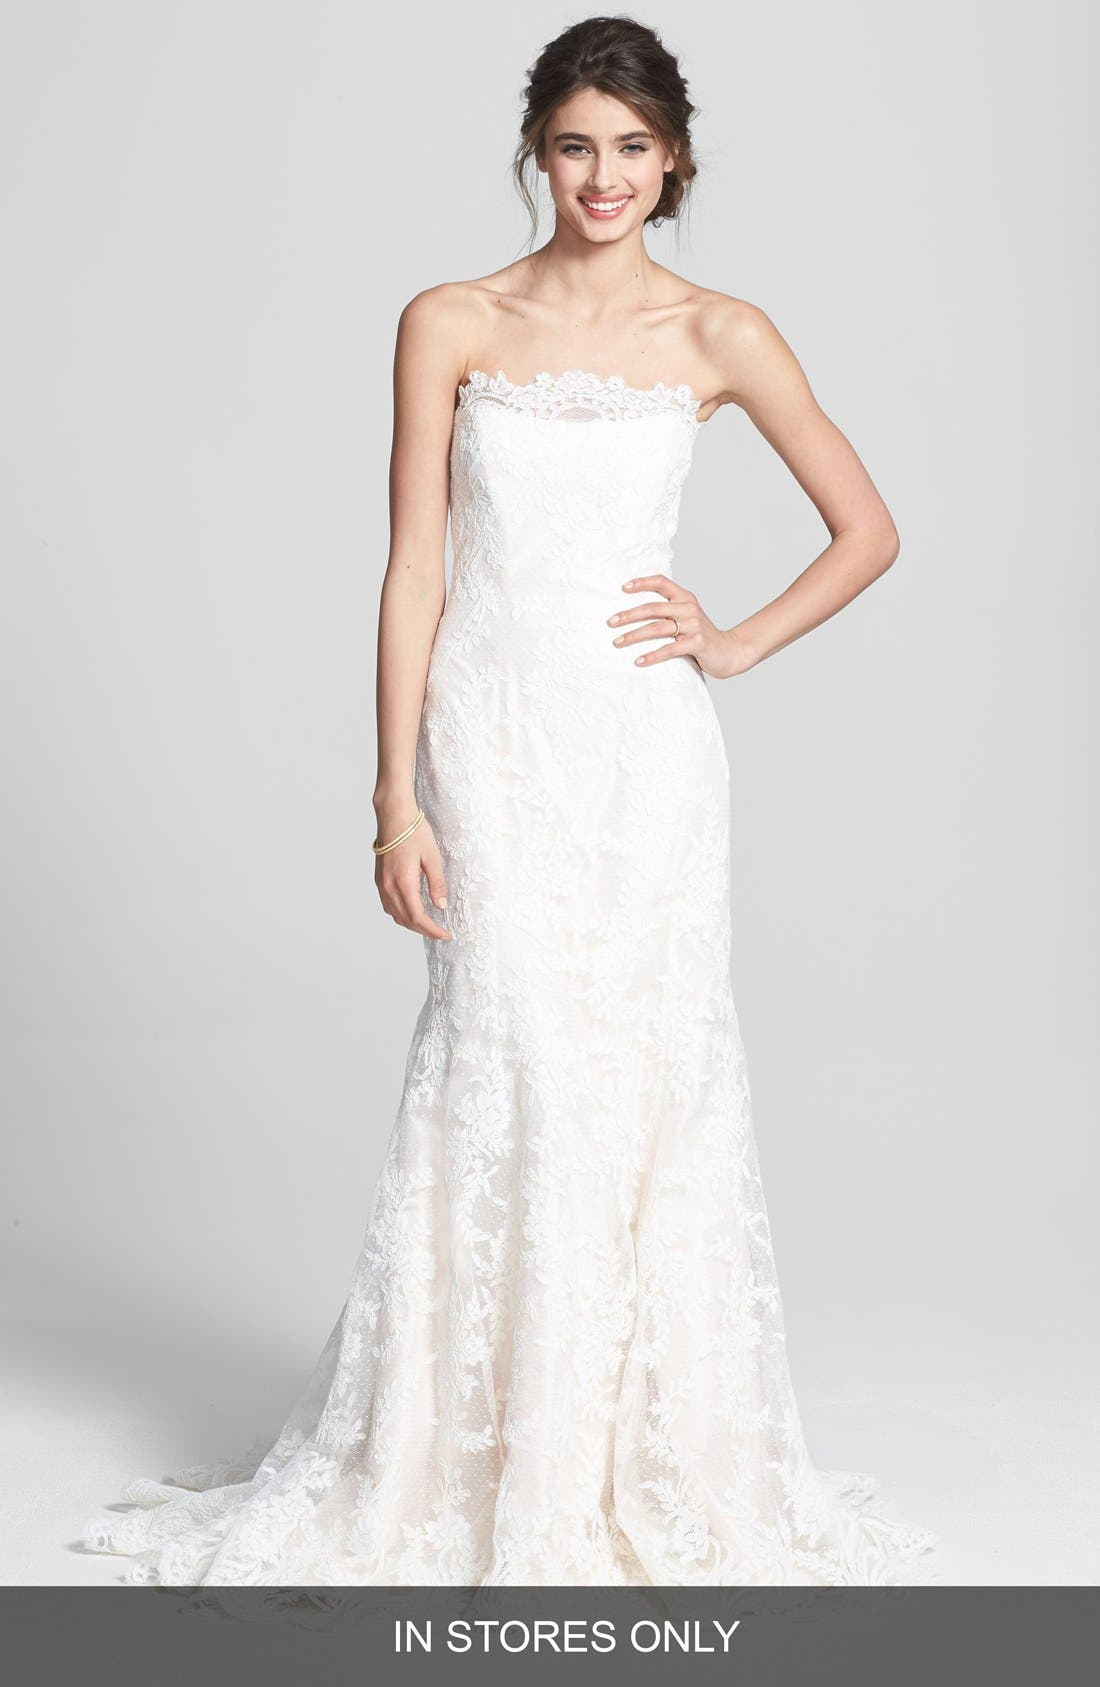 Main Image - Legends by Romona Keveza Fluted Lace Silk Gown (In Stores Only)